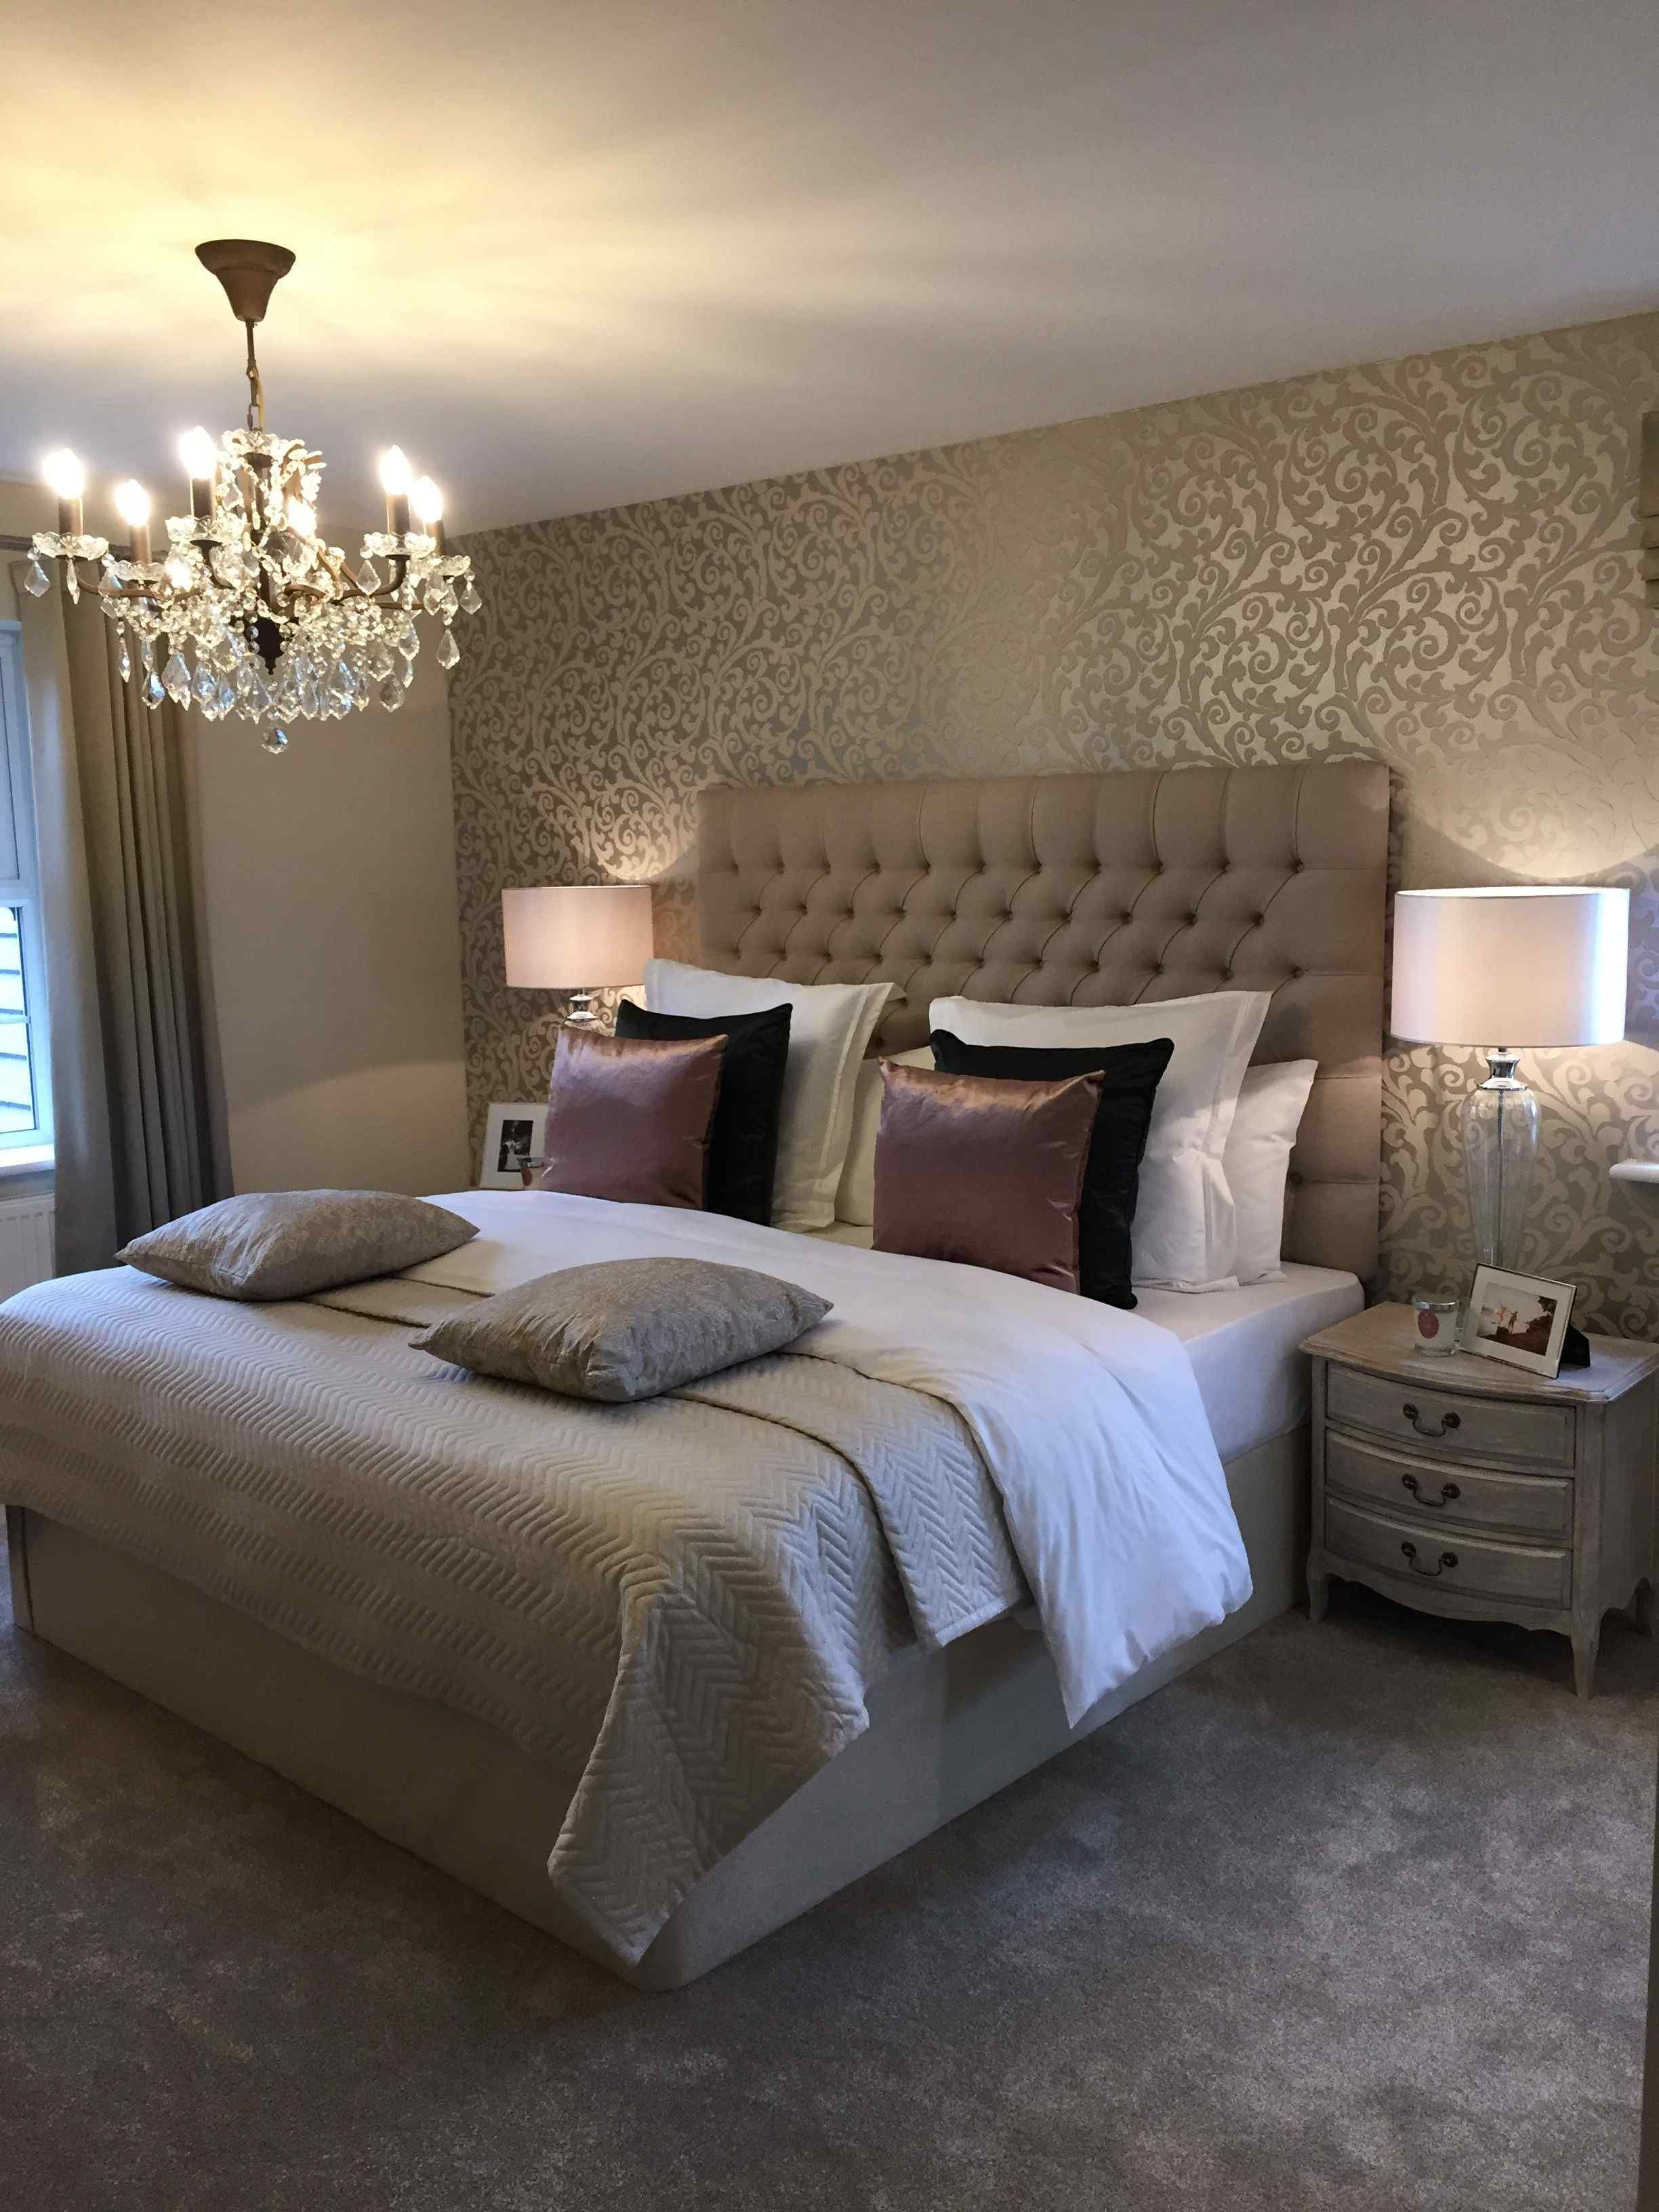 High Quality Most Popular Ways To Inspirational First Home Ideas Decor Couples Master  Bedrooms Headboards Trends You Need To Know Aphrocattery.com